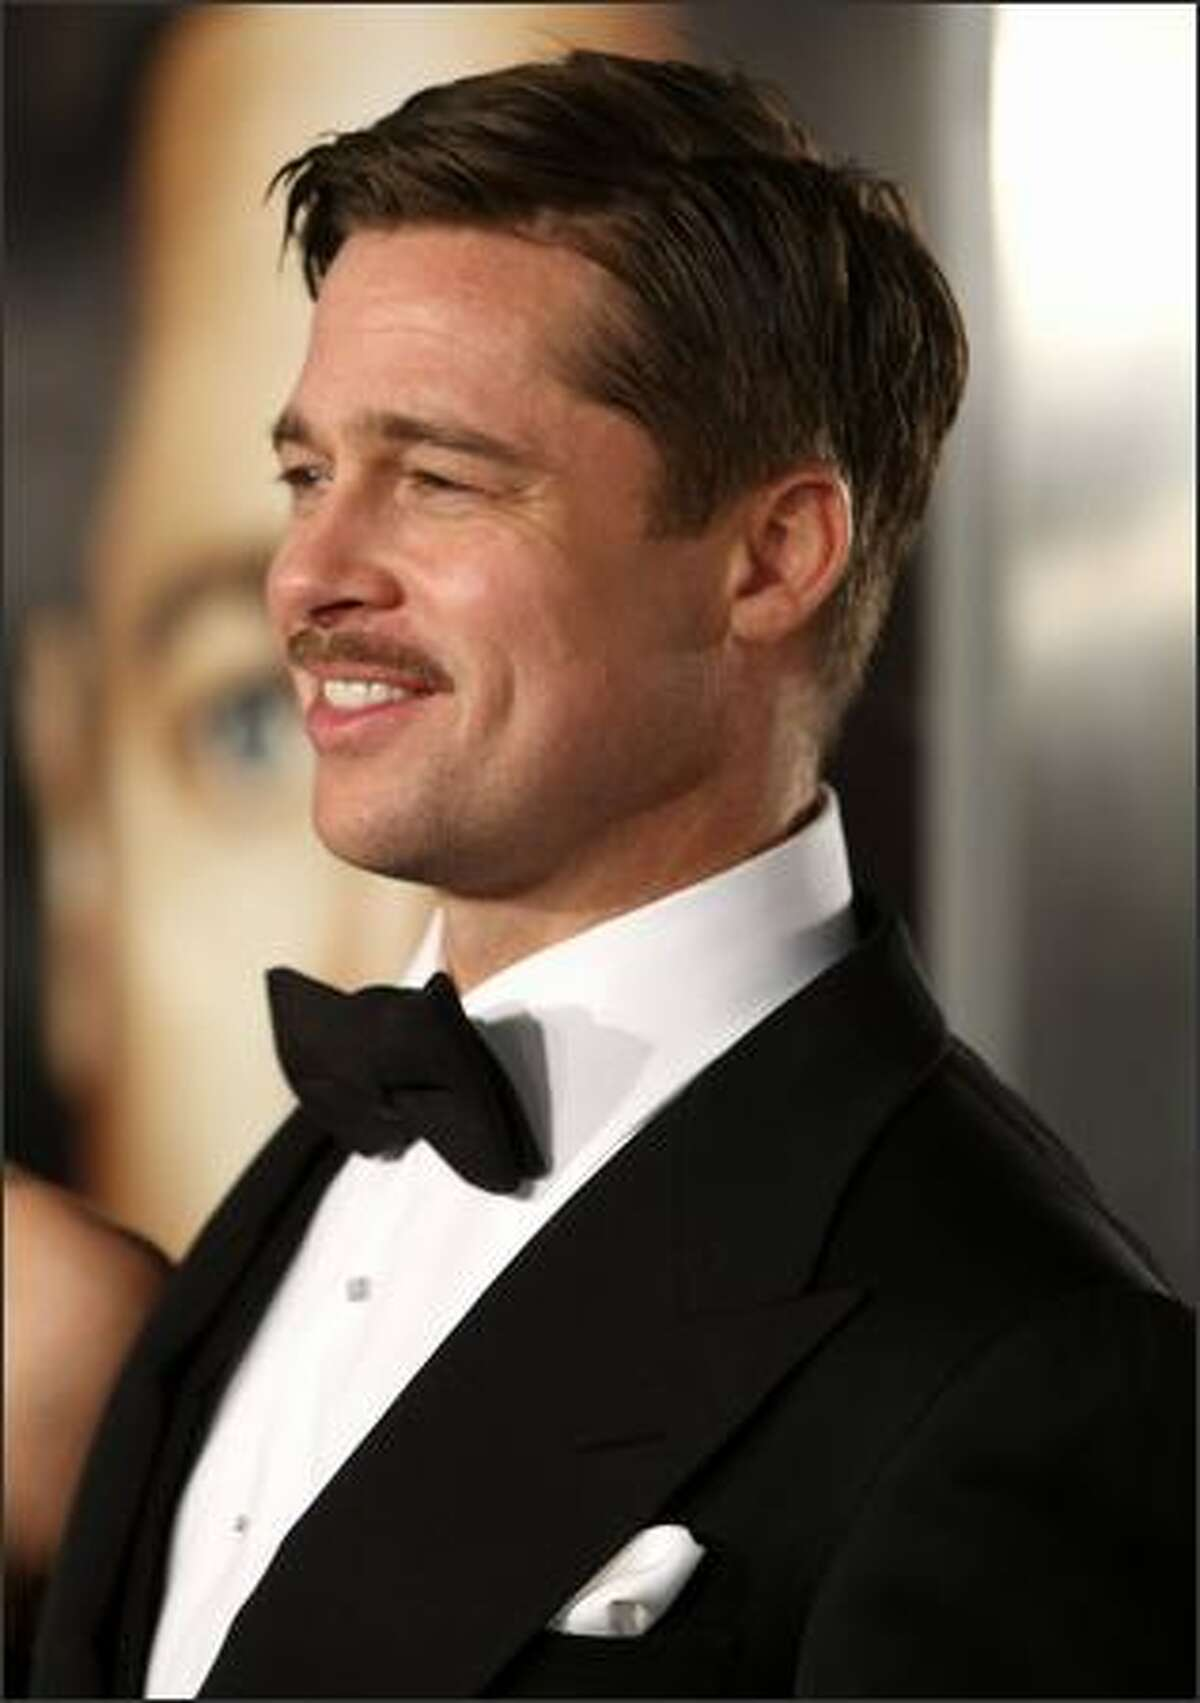 """Actor Brad Pitt arrives at the premiere of Paramount's """"The Curious Case Of Benjamin Button"""" held at Mann's Village Theatre on Monday in Westwood, Calif."""